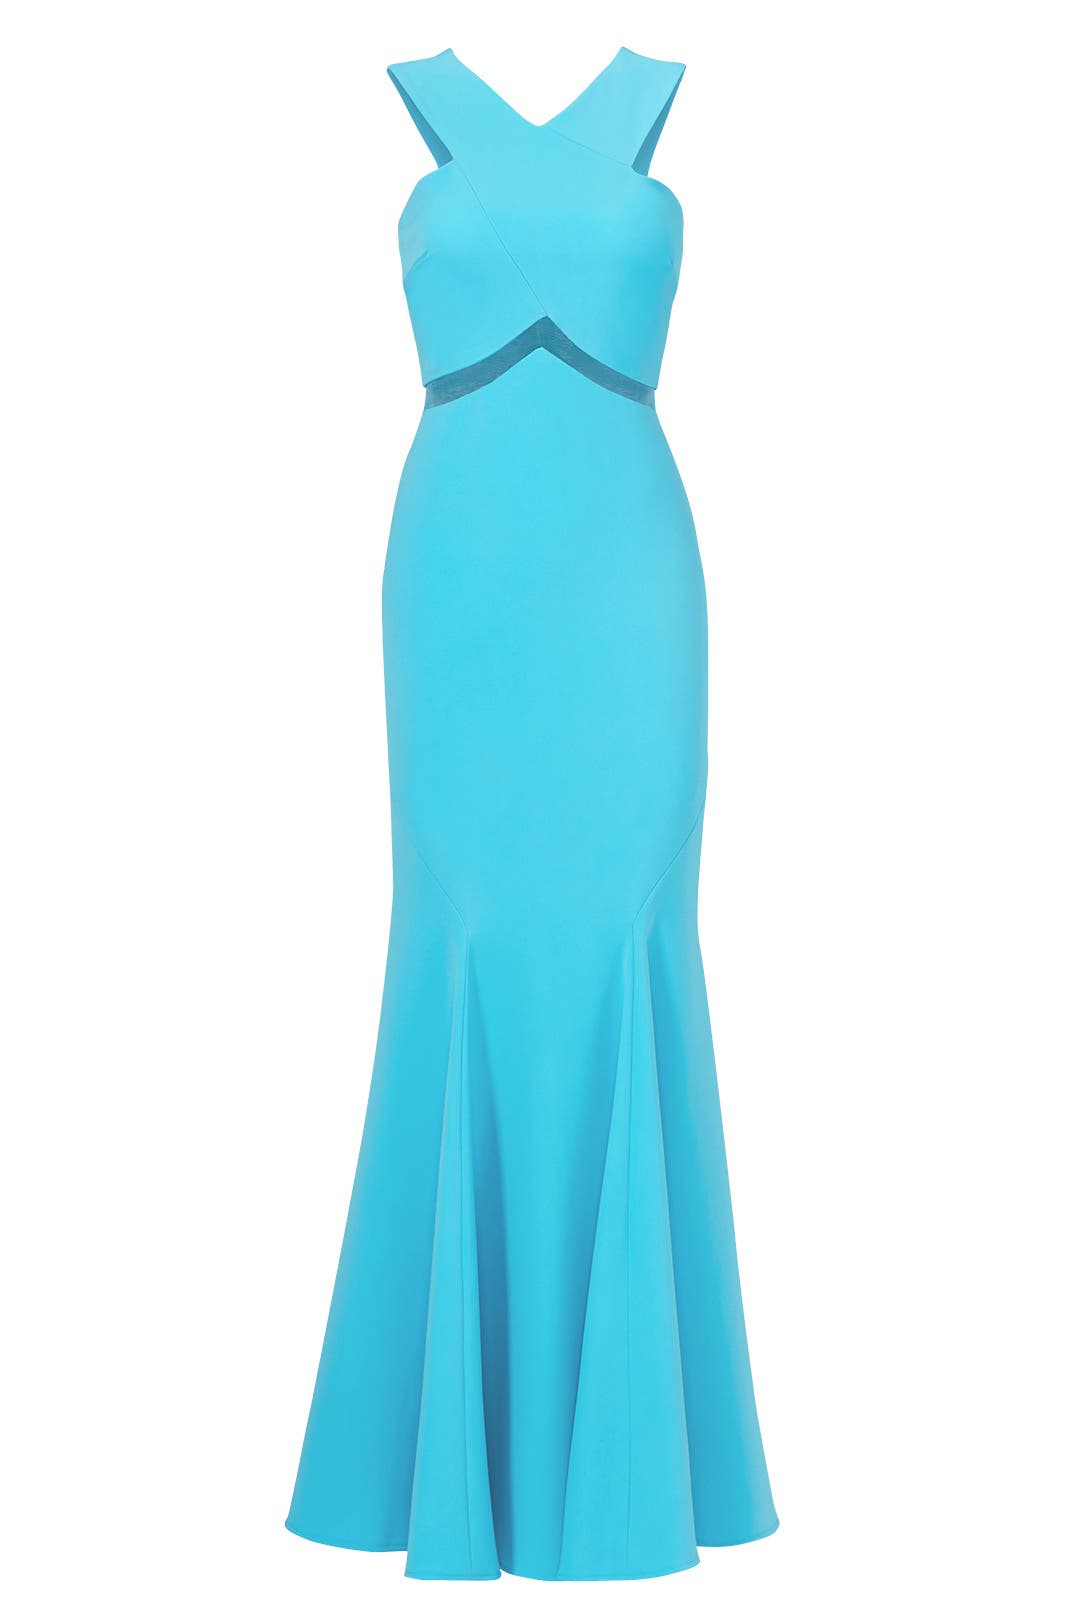 Turquoise Chevron Cutout Gown by Mignon for $88   Rent the Runway